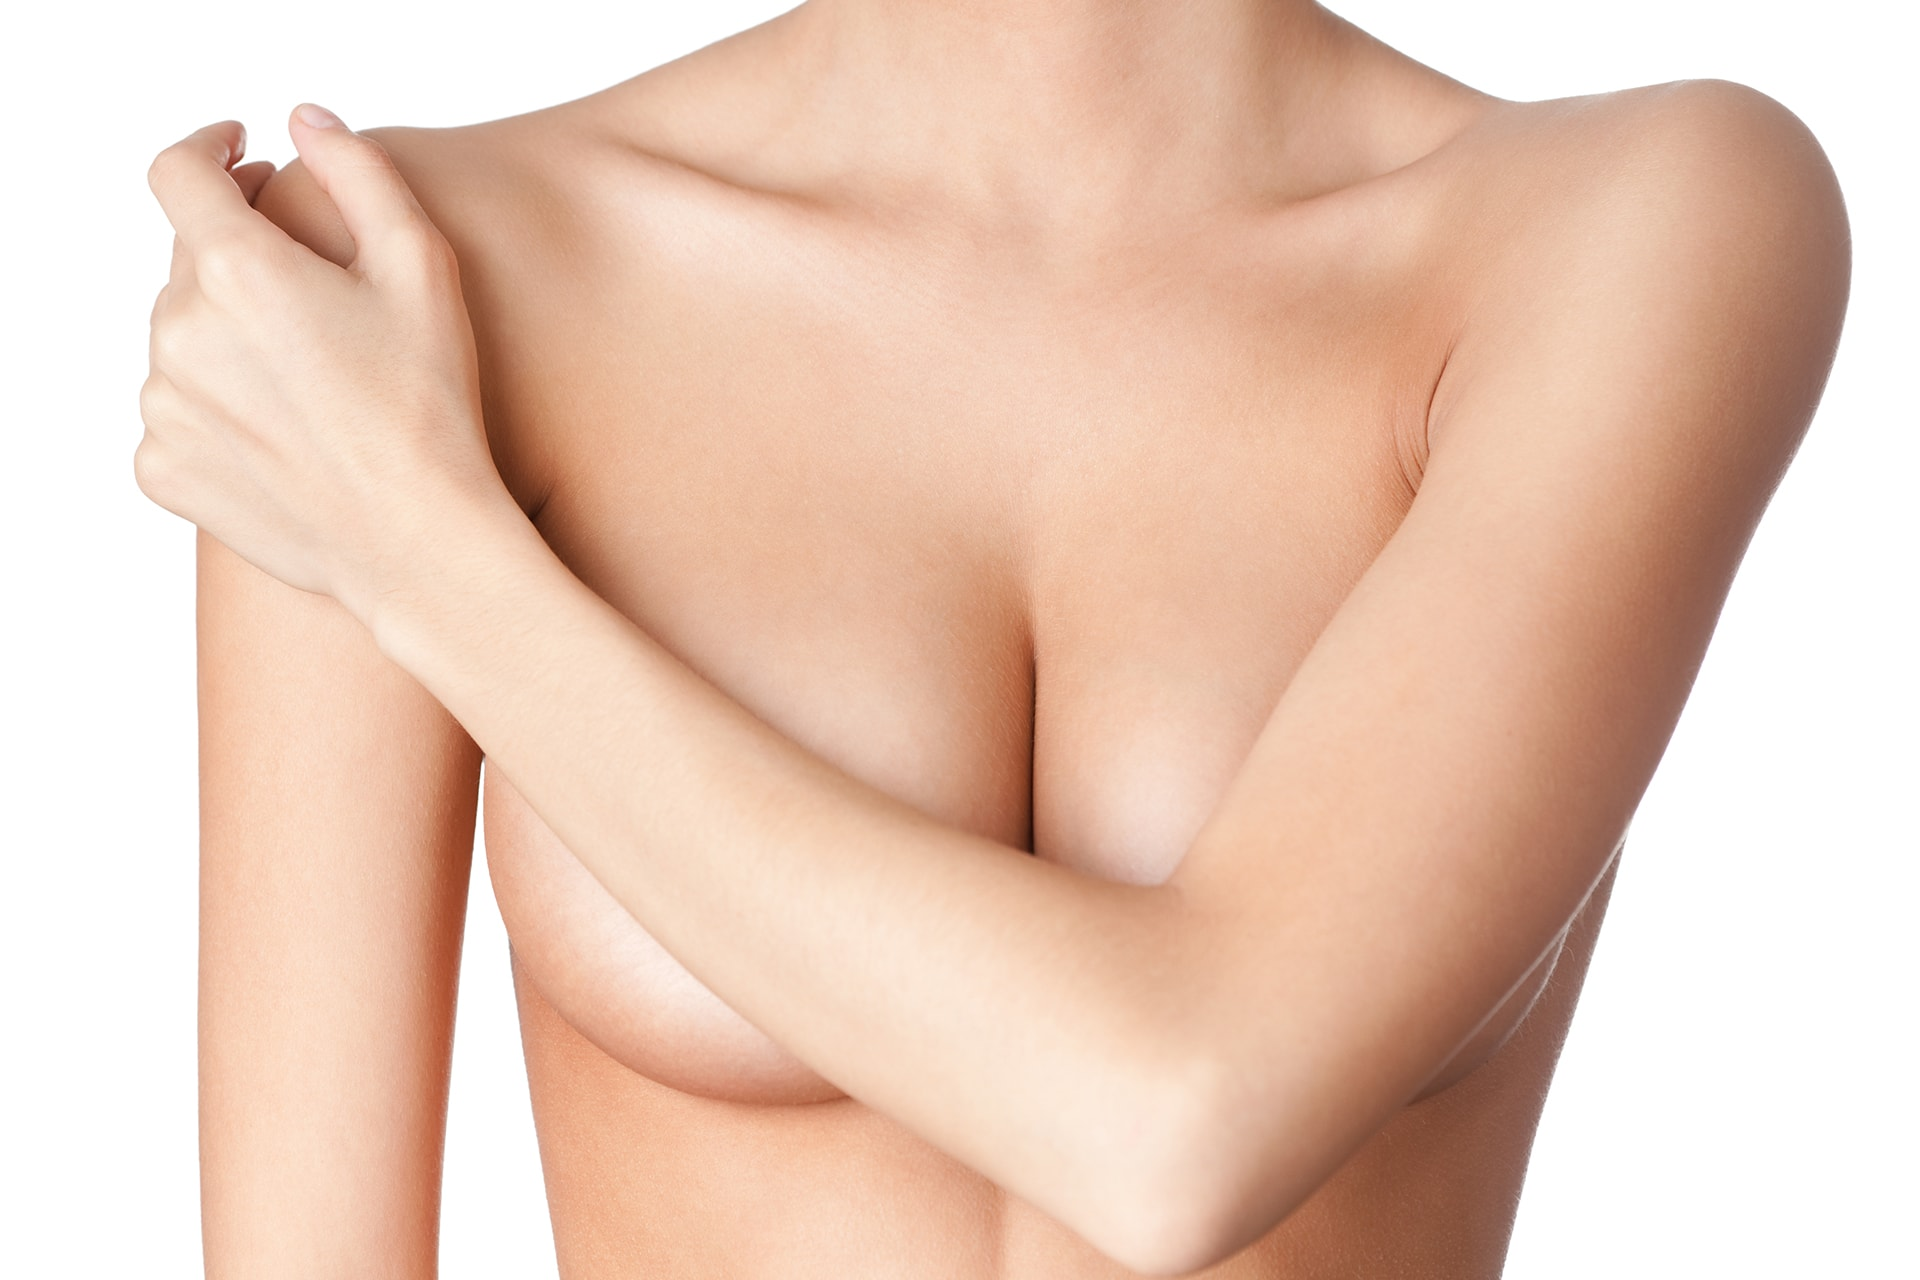 Why Some Women Are Putting Toothpaste On Their Breasts